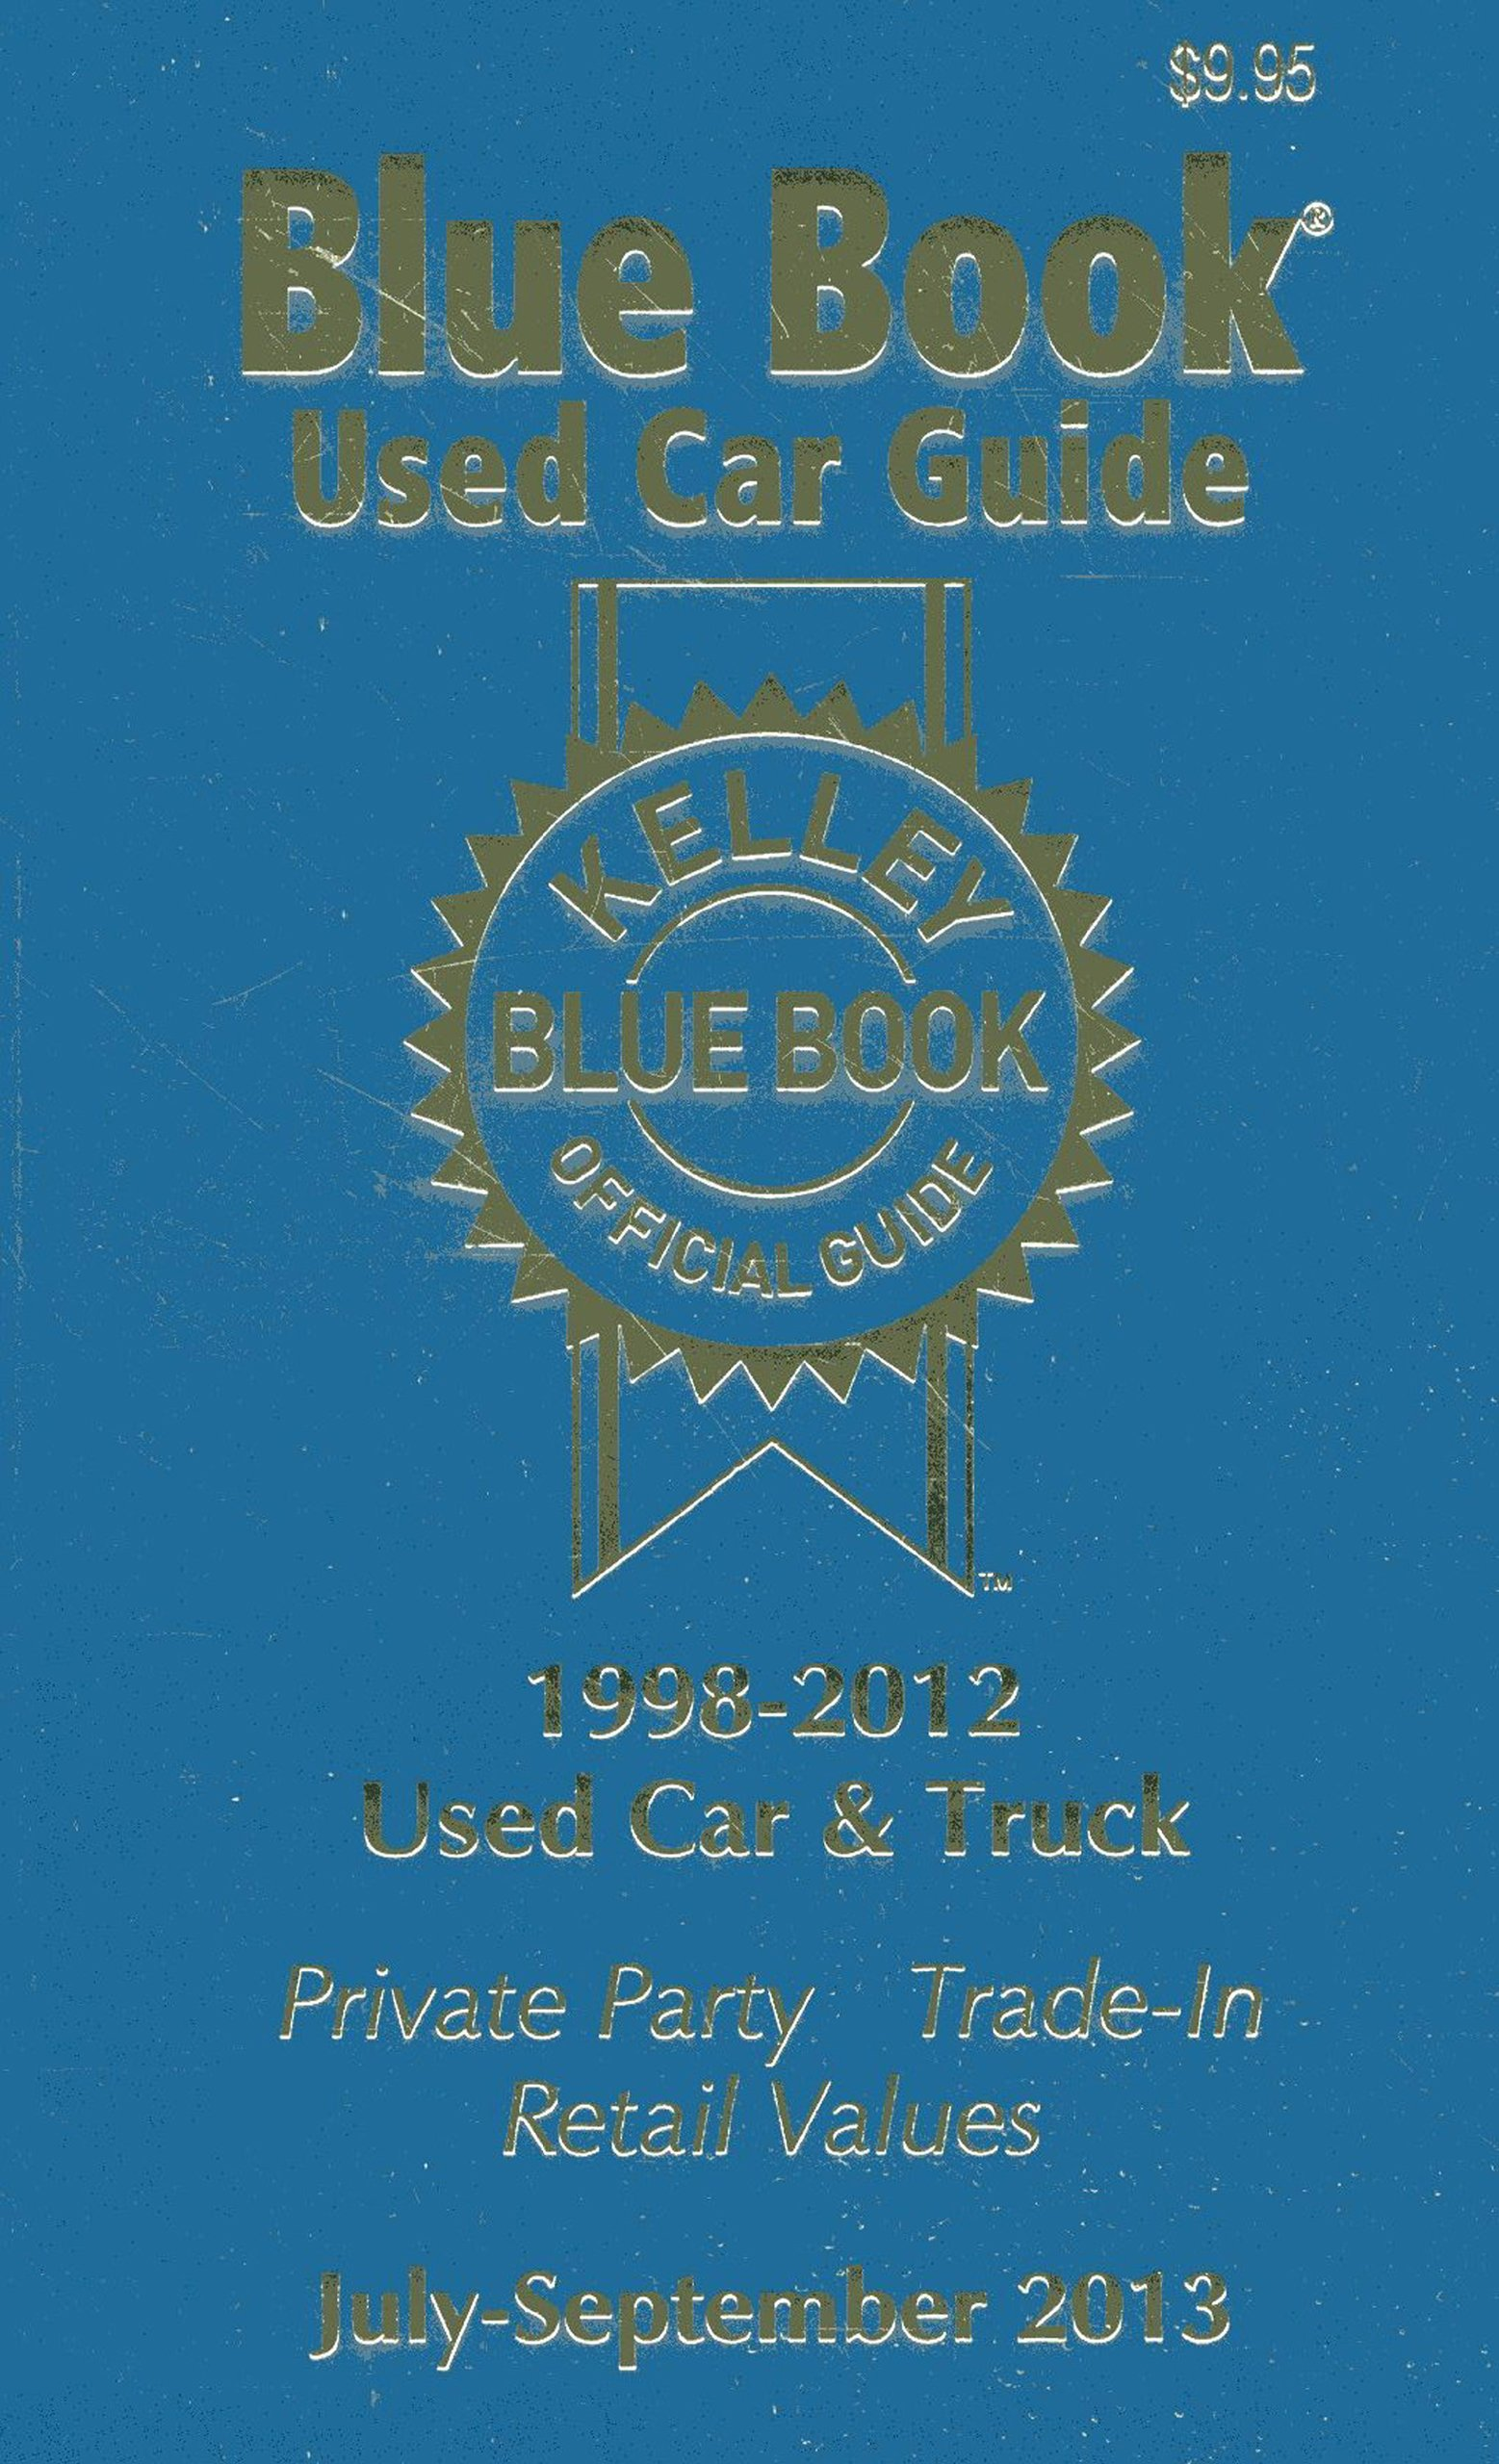 Blue Book Used Car Unique Kelley Blue Book Used Car Guide July Sept 2013 Kelley Blue Book